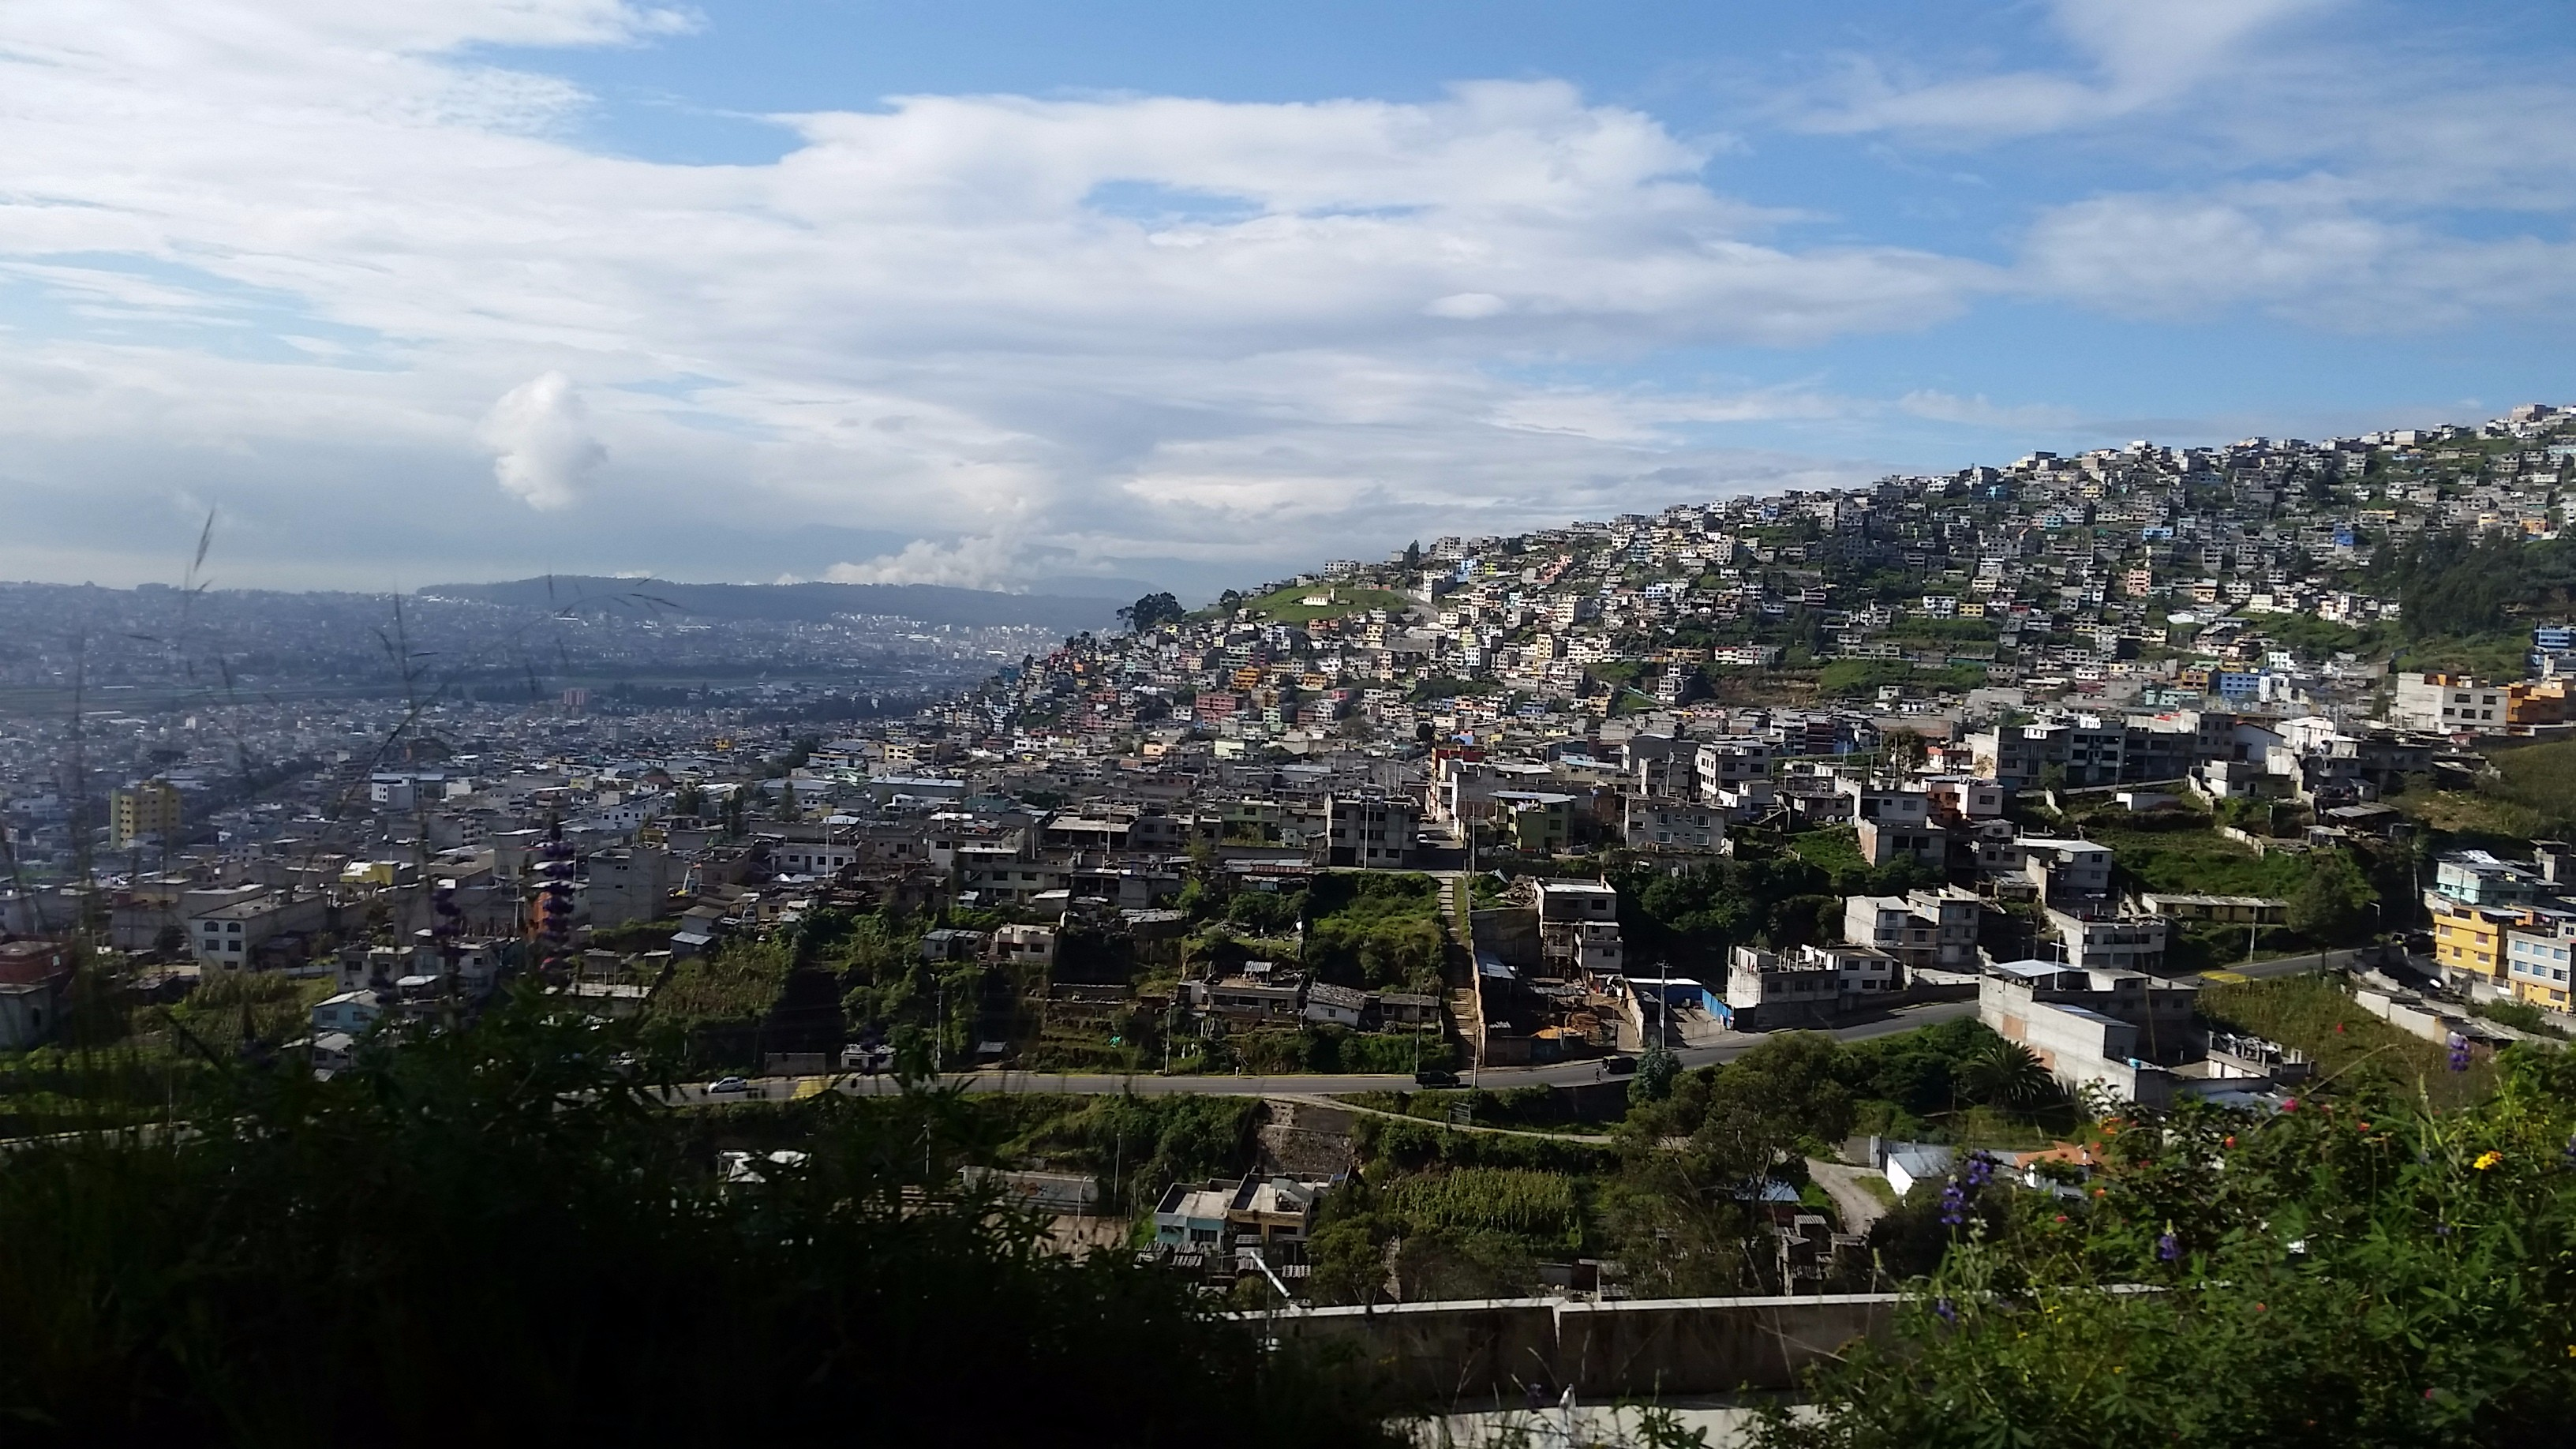 Another Quito vista.